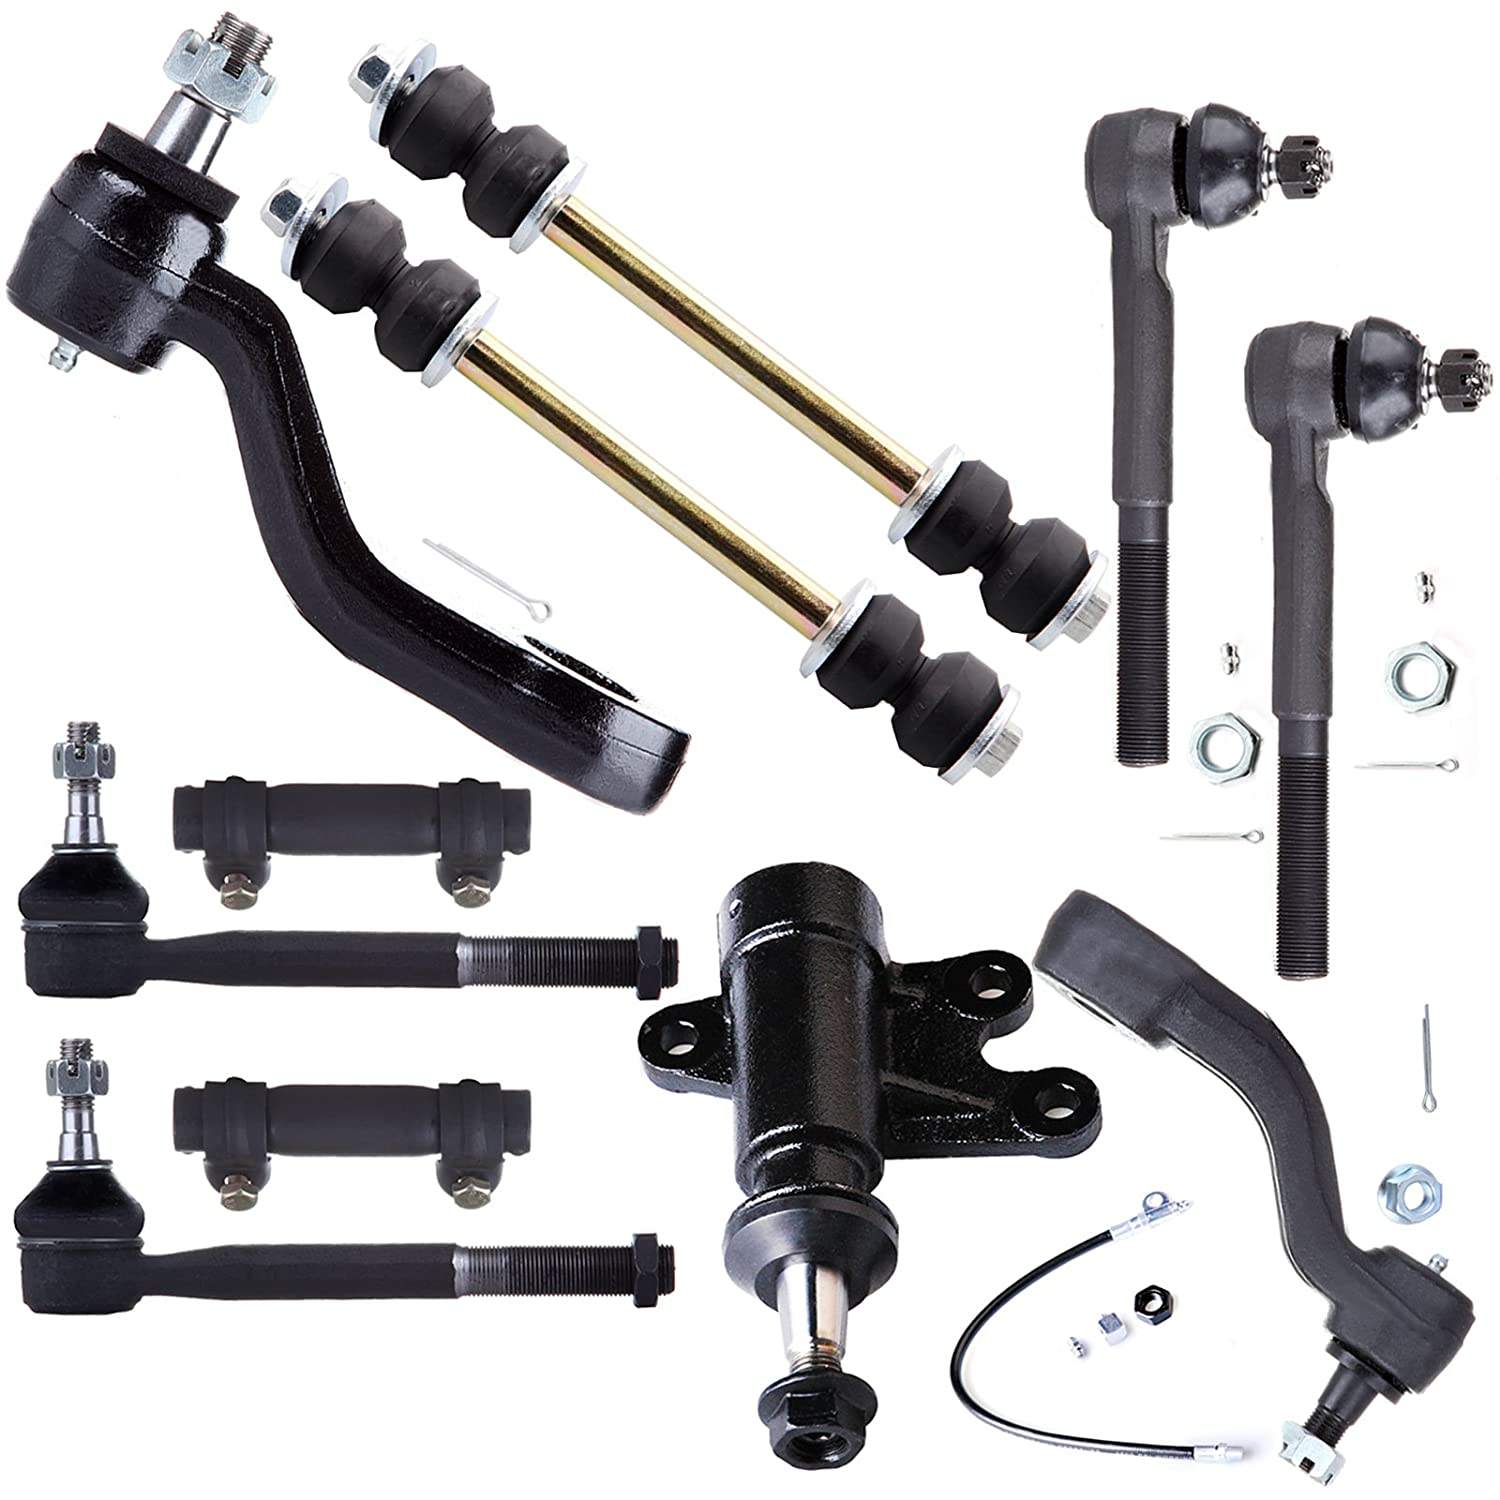 SCITOO 11pcs Suspension Kit 2 Front Outer 2 Inner Tie Rod End 2 Adjusting Sleeve 2 Stabilizer Bar 1 Idler Arm Bracket 1 Pitman 1 Idler Arm fit for 1993-1999 GMC Yukon 4WD K6447